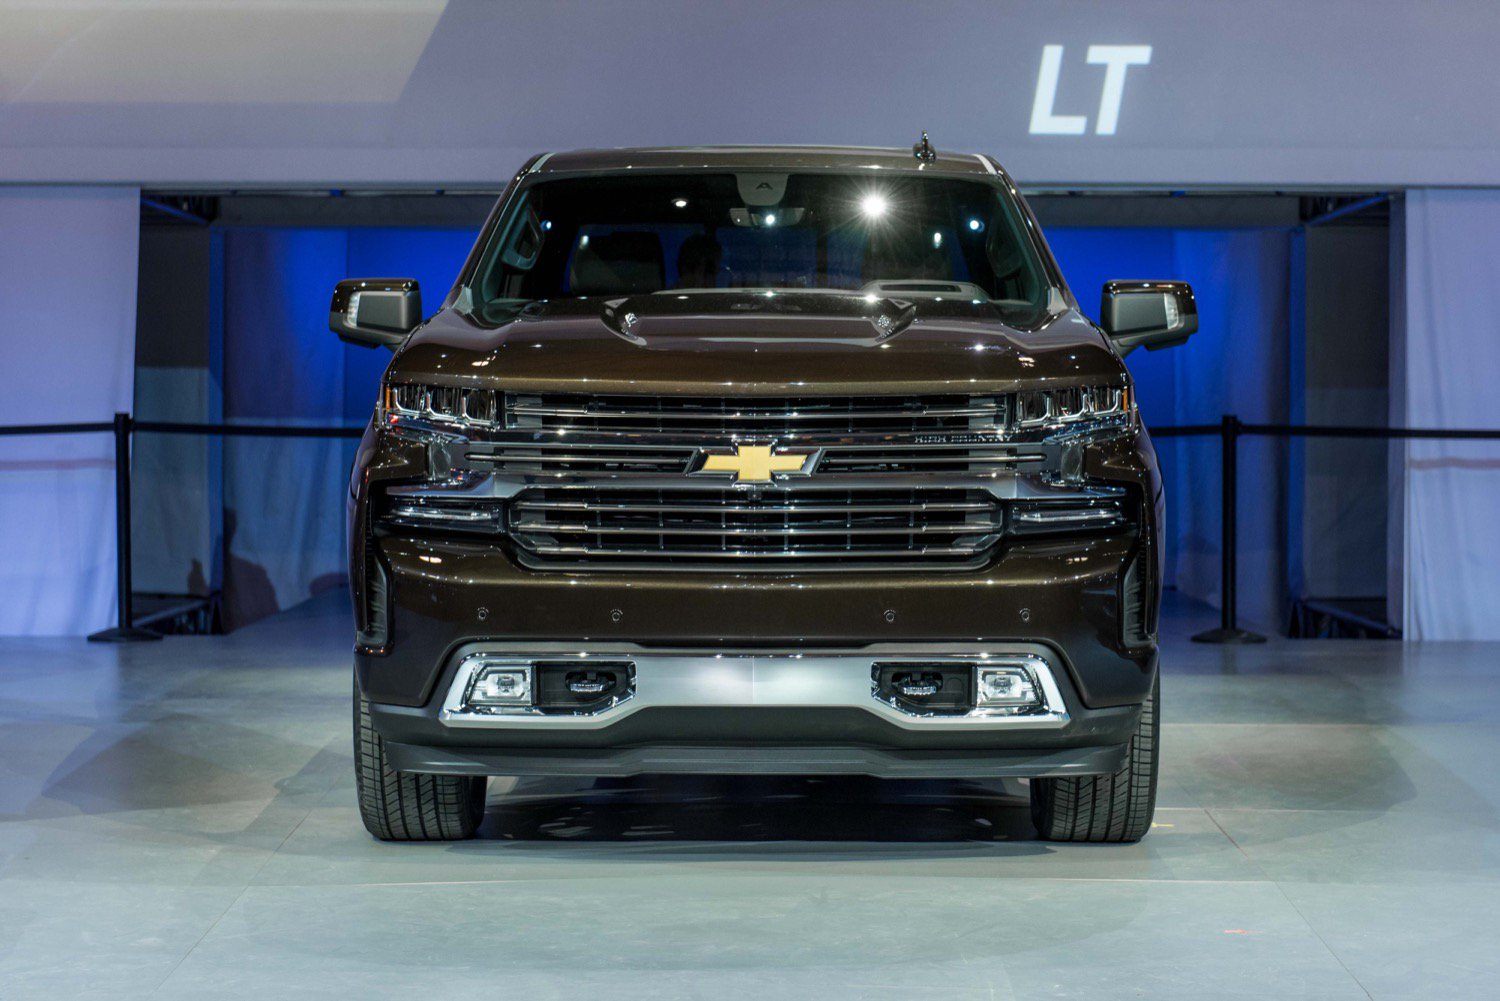 44 All New 2019 Chevy 2500Hd Duramax Images